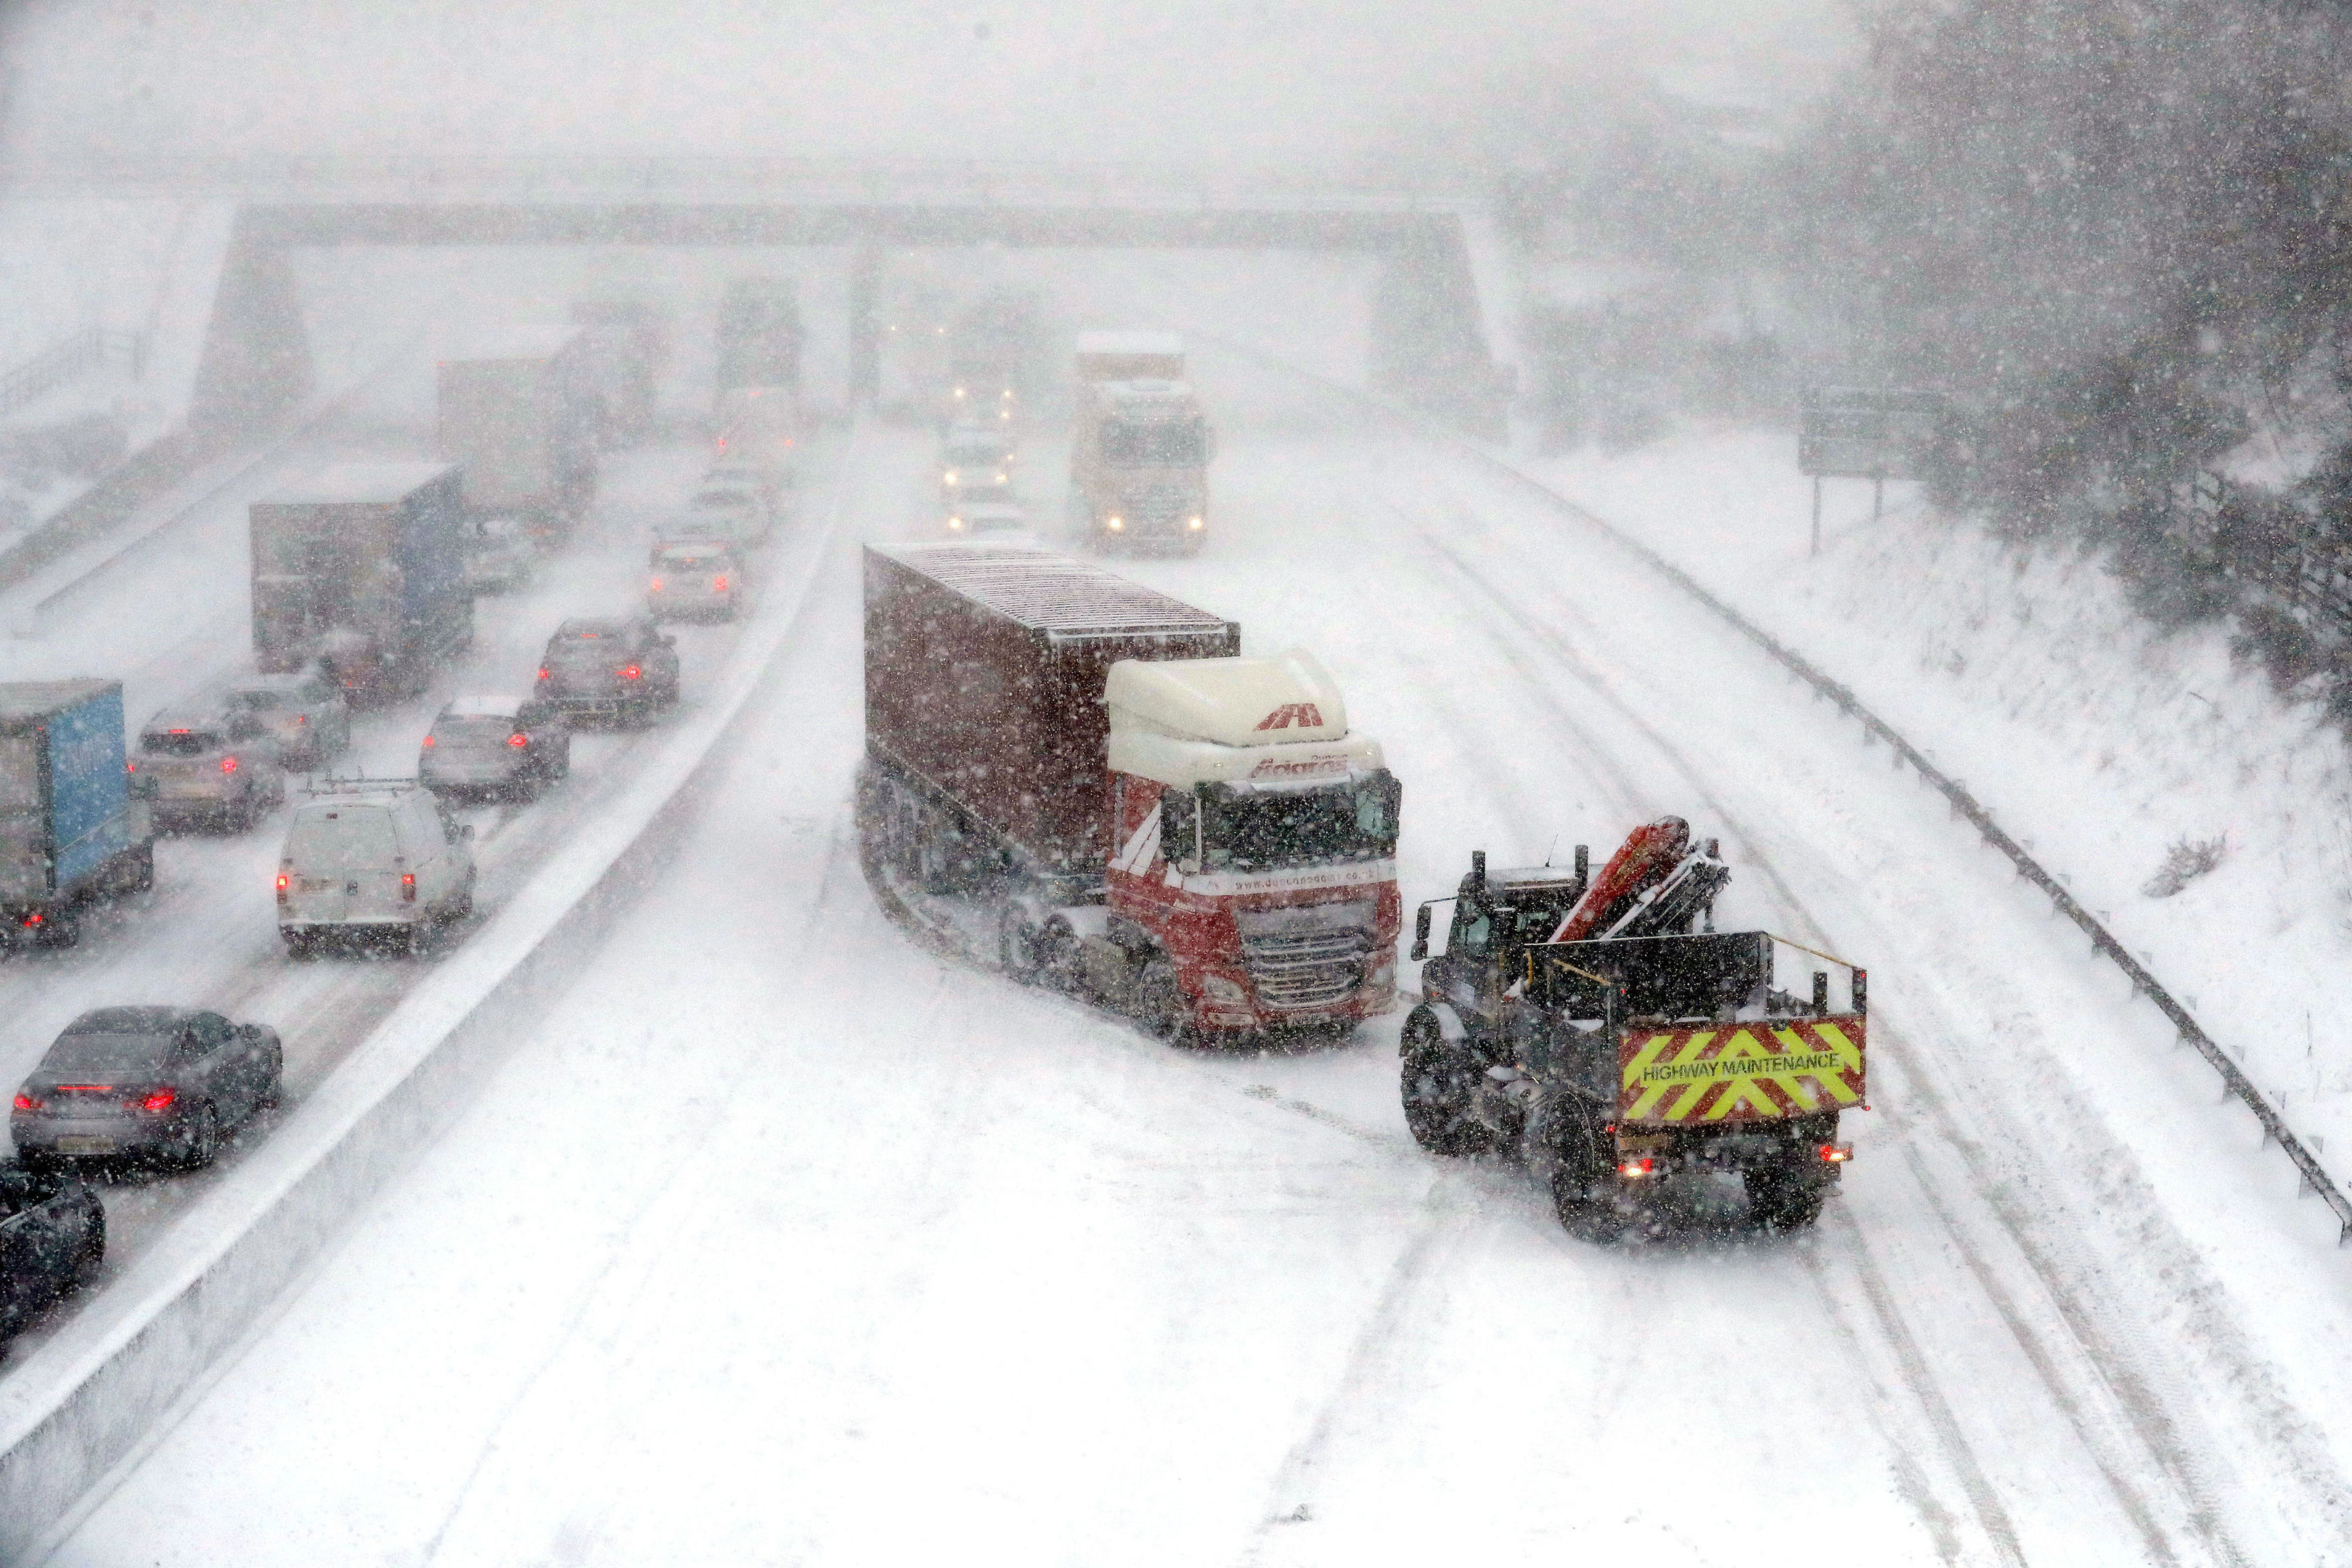 Drivers trapped by snow spend night in vehicles